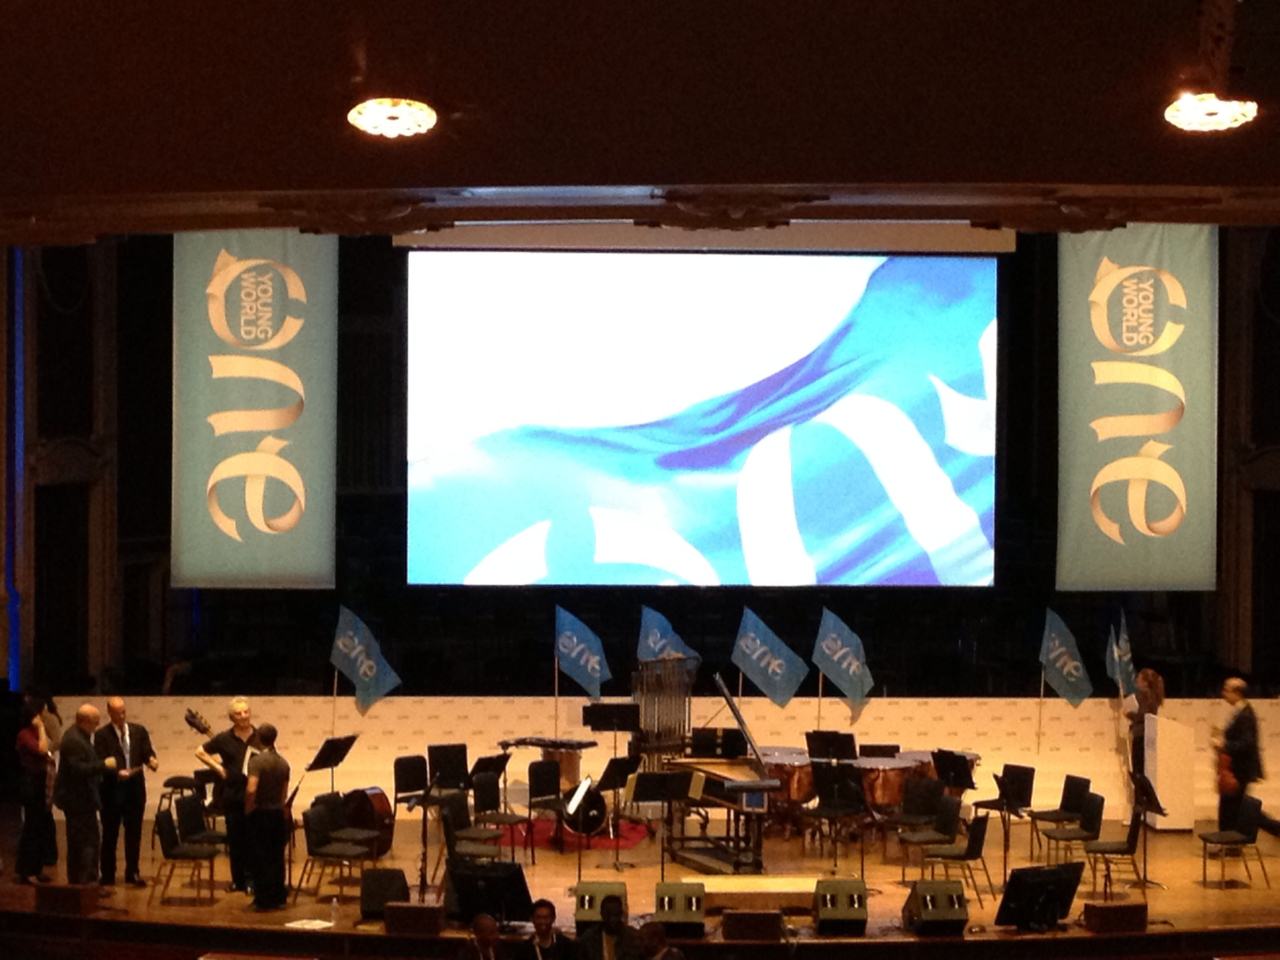 "over the past 1.5 days, i was able to attend #OneYoungWorld (@oneyoungworld), dubbed as a mini-davos…a very inspiring summit of over 1200 delegates from over 180 countries, all gathered to hear from some pretty big deal cats - Former President Bill Clinton, Professor Mohammad Yunus, Chef Jamie Oliver, Activist Fatima Bhutto, Kiva founder Jessica Jackley, Musician Bob Geldof …and a ton of other A-list business, government, ngo and educational experts (seriously A-list, seriously).     I'm excited to see how the Summit progresses over the years and imagine that in a year or 2 people will say the same thing they do about SXSWi ('dude, i went to sxswi before it became this huge thing that tens of thousands of people flock to every year and go nuts to get into)…or something like that.     there were so many young leaders, all with ambitions to change deep socio-economic issues in their country…and many delegates that were sponsored by their companies to discover, learn and share ways to answer global challenges around a myriad of topics (e.g., human rights, ethical businesses, food, energy, gender inequalities, etc.).     The premise of One Young World is simple, yet huge - give the young leaders of tomorrow a platform to activate and change the world for the better. And as many of the amazing speakers have said this far (though not in these exact words) - it's up to you kids, get off your asses and do something. no really, do something…    I think Professor Muhammad Yunus said it best ""start simple. start small.""    so i hope to return to #OYW and hear about 1200+ projects that have been launched or are underway or are crazy successful…and  for that to happen, all those delegates need to start talking to each other (not just the people they know or the A-list experts), they need to start challenging each other and sharing answers…and they need to start putting pen to paper, or to code to screen (or both)….asap.    And I think that by the end of the 3 days they will….because (as Clinton put it in not these exact words) - none of us are doing social good here. we're making sure we have all have a world to live in down the road.     so cheers to 2013 and seeing the thousands of awesome projects/businesses/organizations launched.     oh, and hey brands and brand people, get on board now, because if you don't you're not gonna matter to anyone in a couple of years. seriously, you won't (trust me, there's a lot of kids out there coming up with products and services that are cheaper, faster and way cooler than yours)."